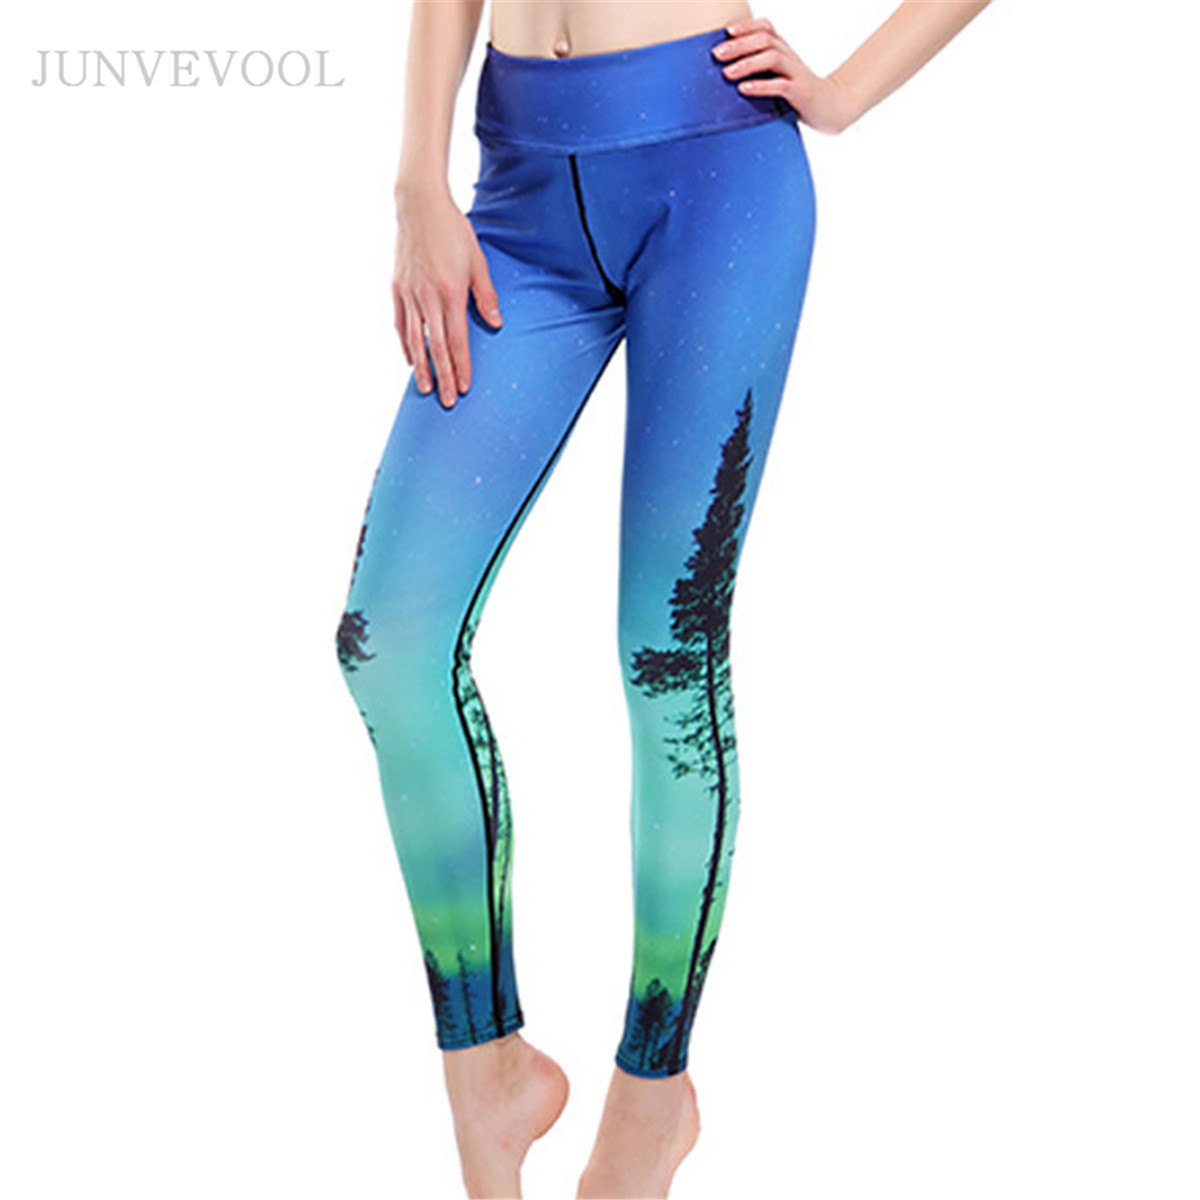 59dfed0af53ca Novelty 3D Printed Workout Pant Women Leggings Galaxy Sexy Trees Printing  Sexy Cropped Rock Funky Capris Punk Hot Legins-in Leggings from Women's  Clothing ...